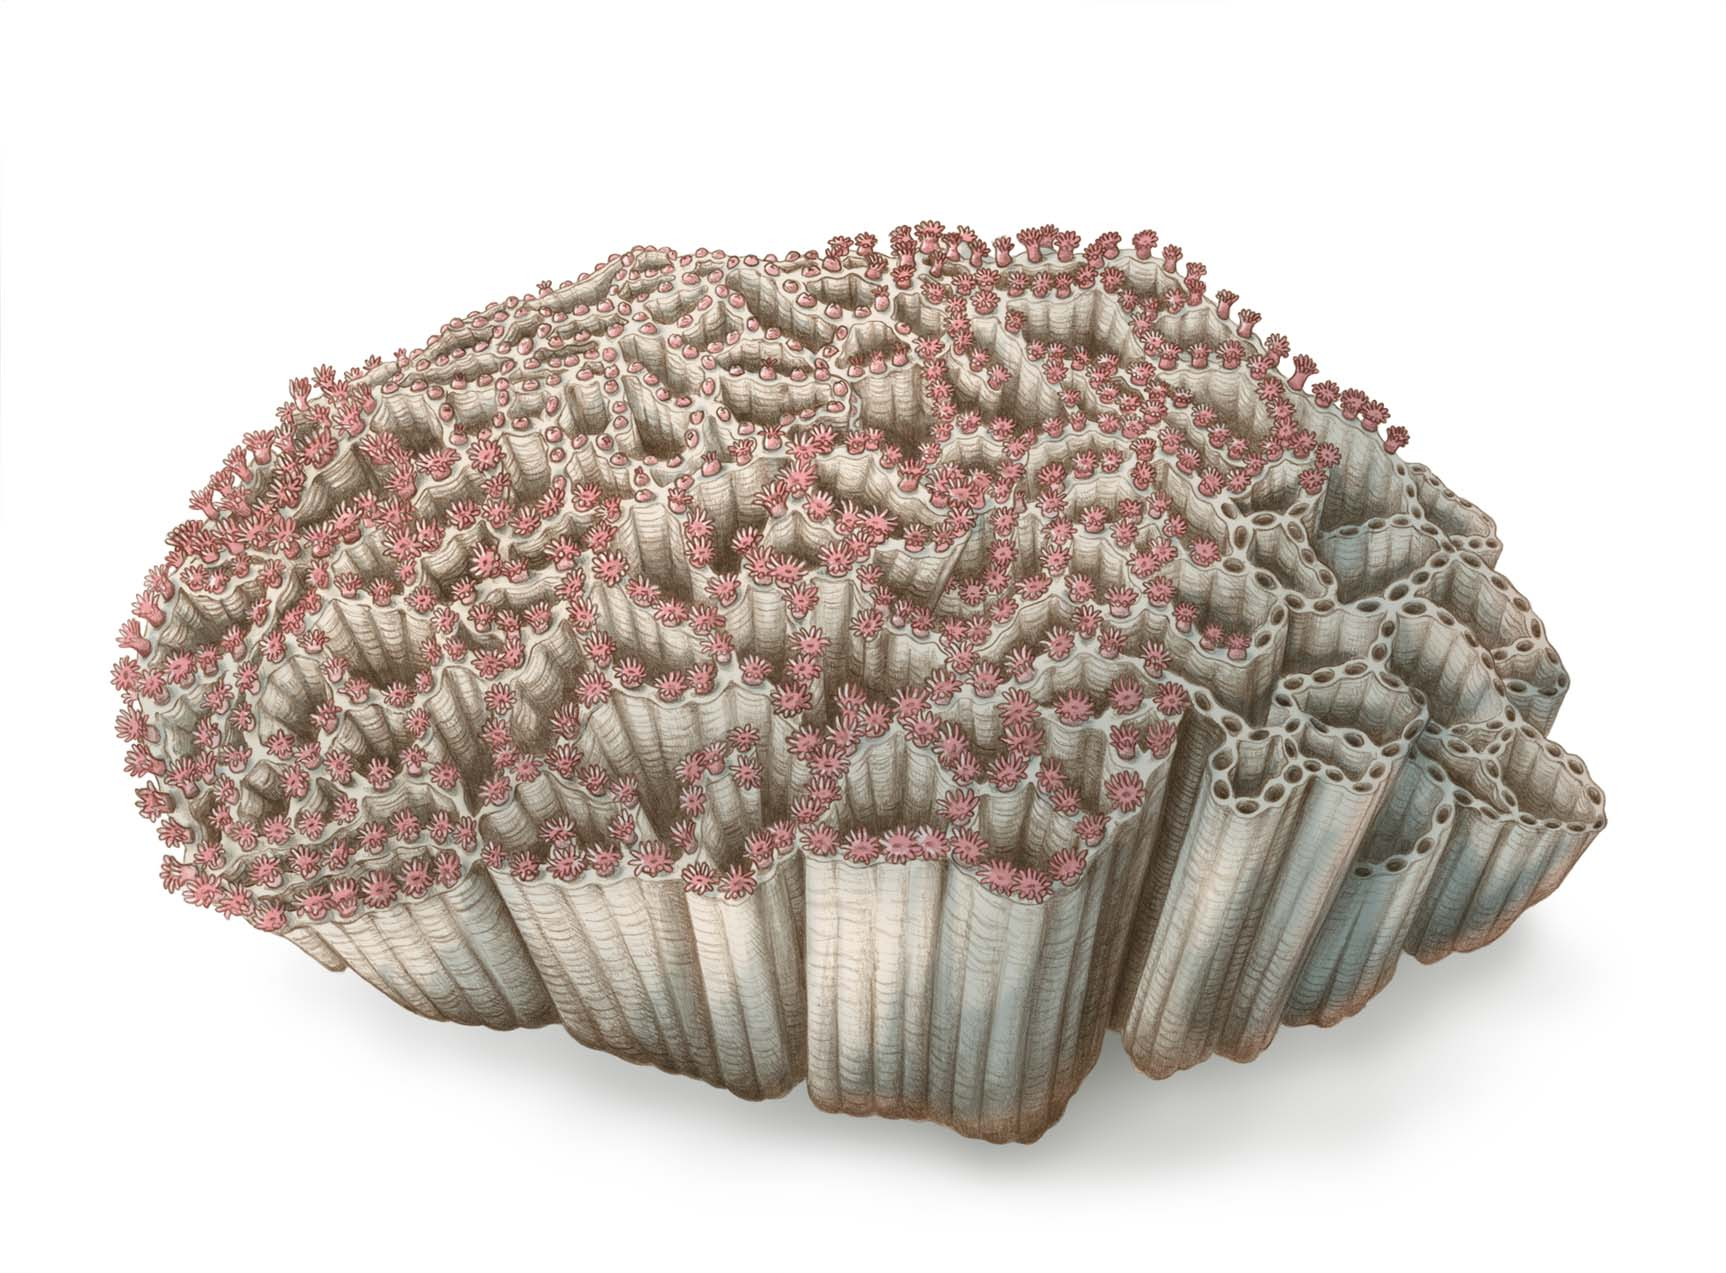 Illustration of an intricate coral with pink polyps